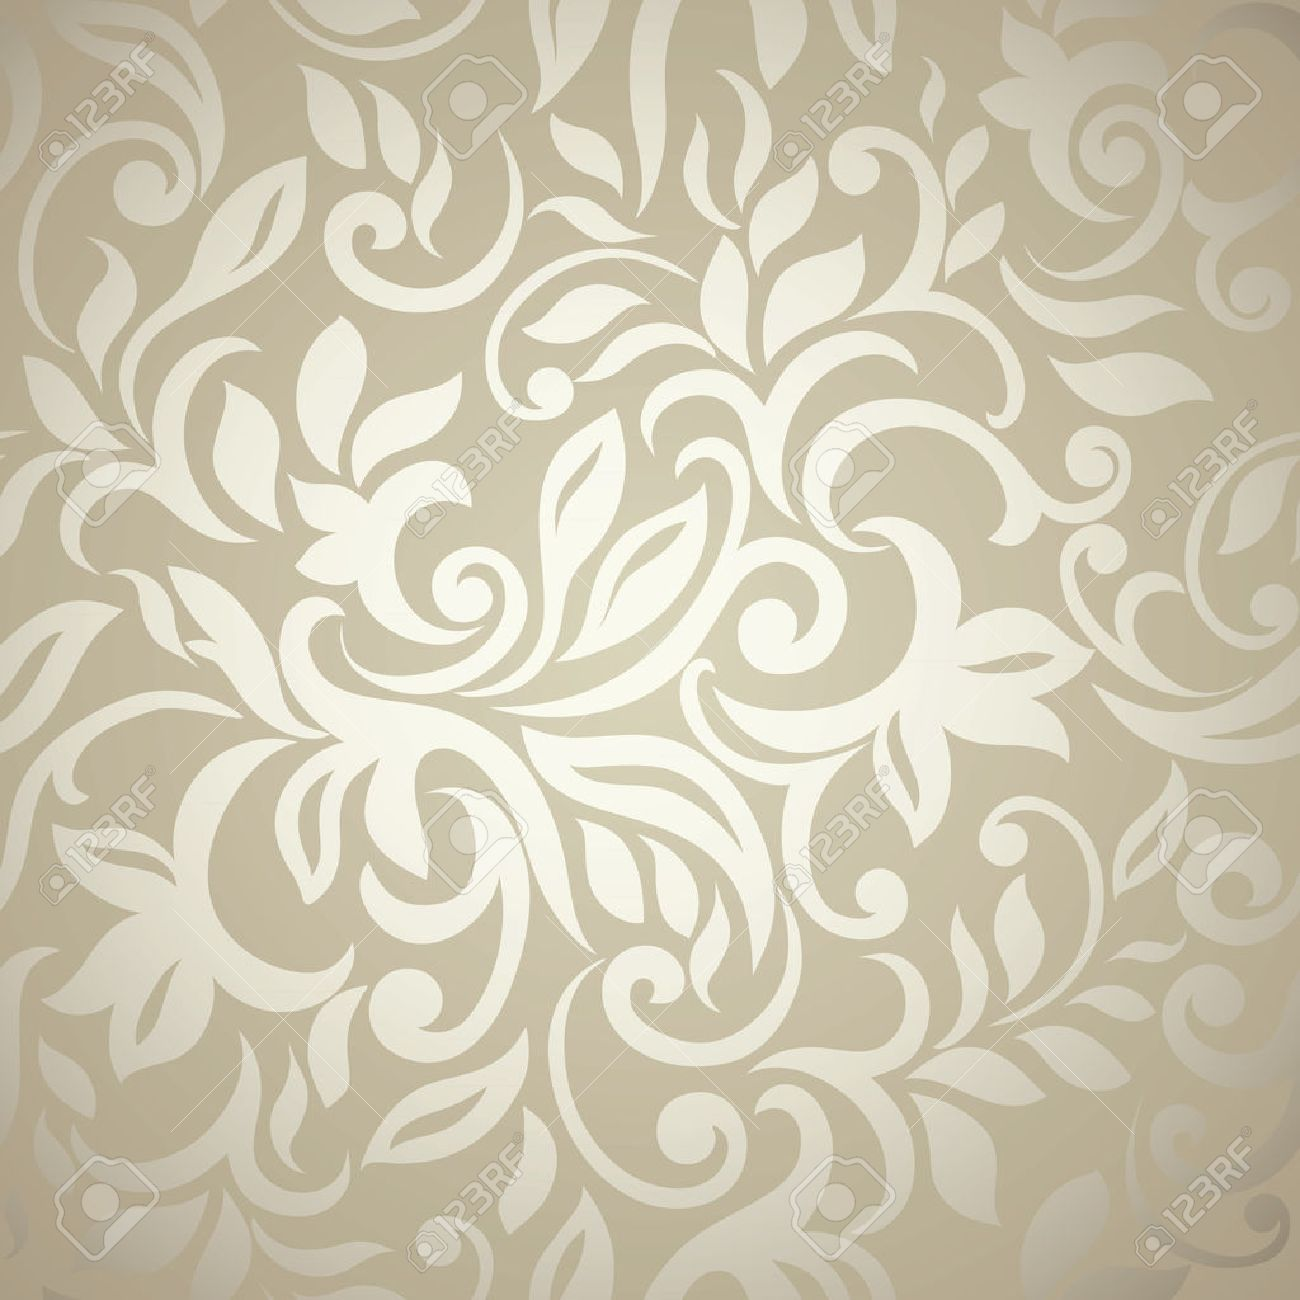 Elegant Stylish Abstract Floral Wallpaper Seamless Pattern Stock Vector